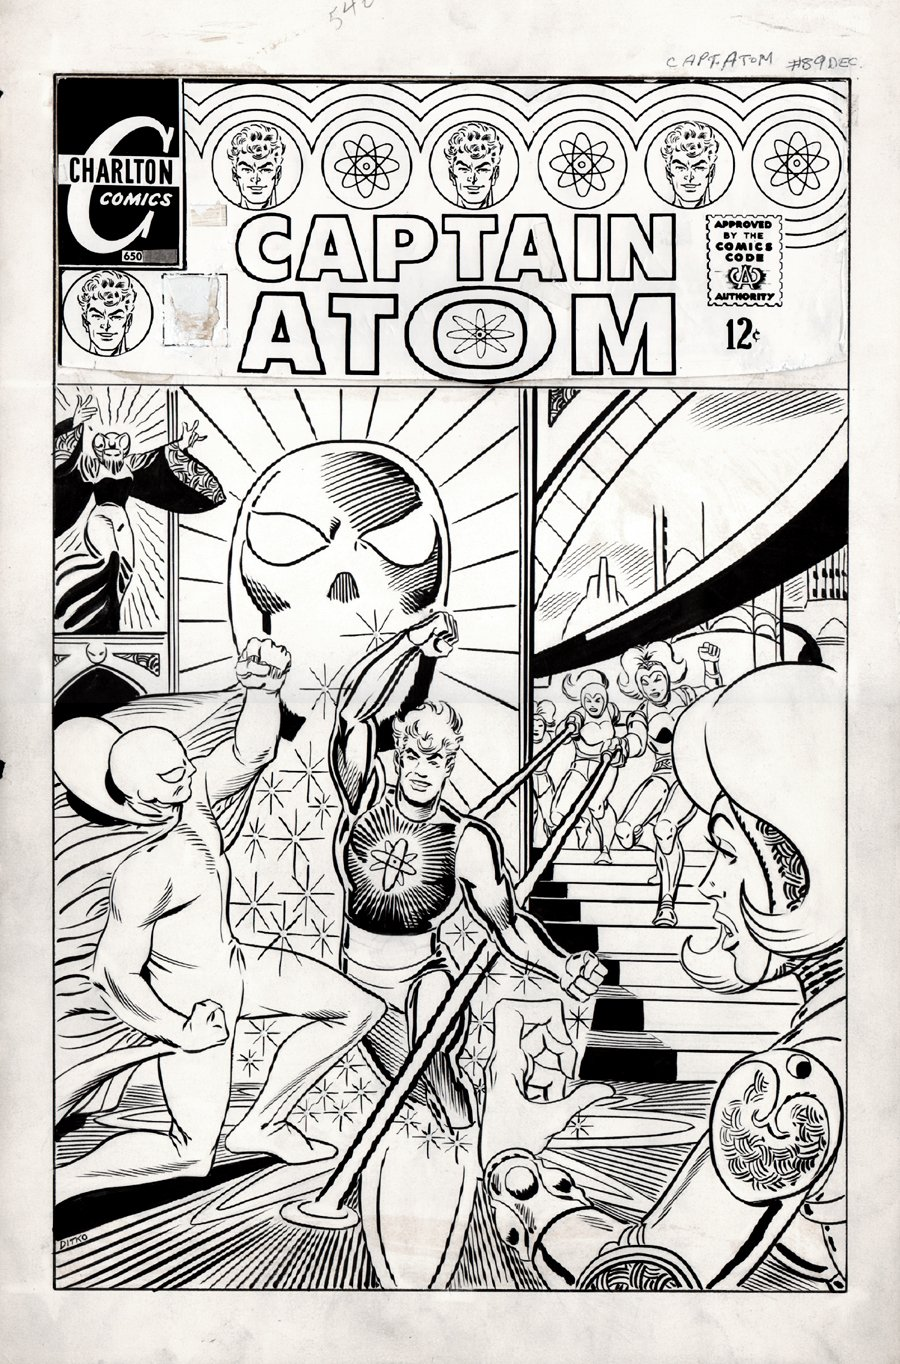 Captain Atom #90 Cover (LARGE ART) 1967